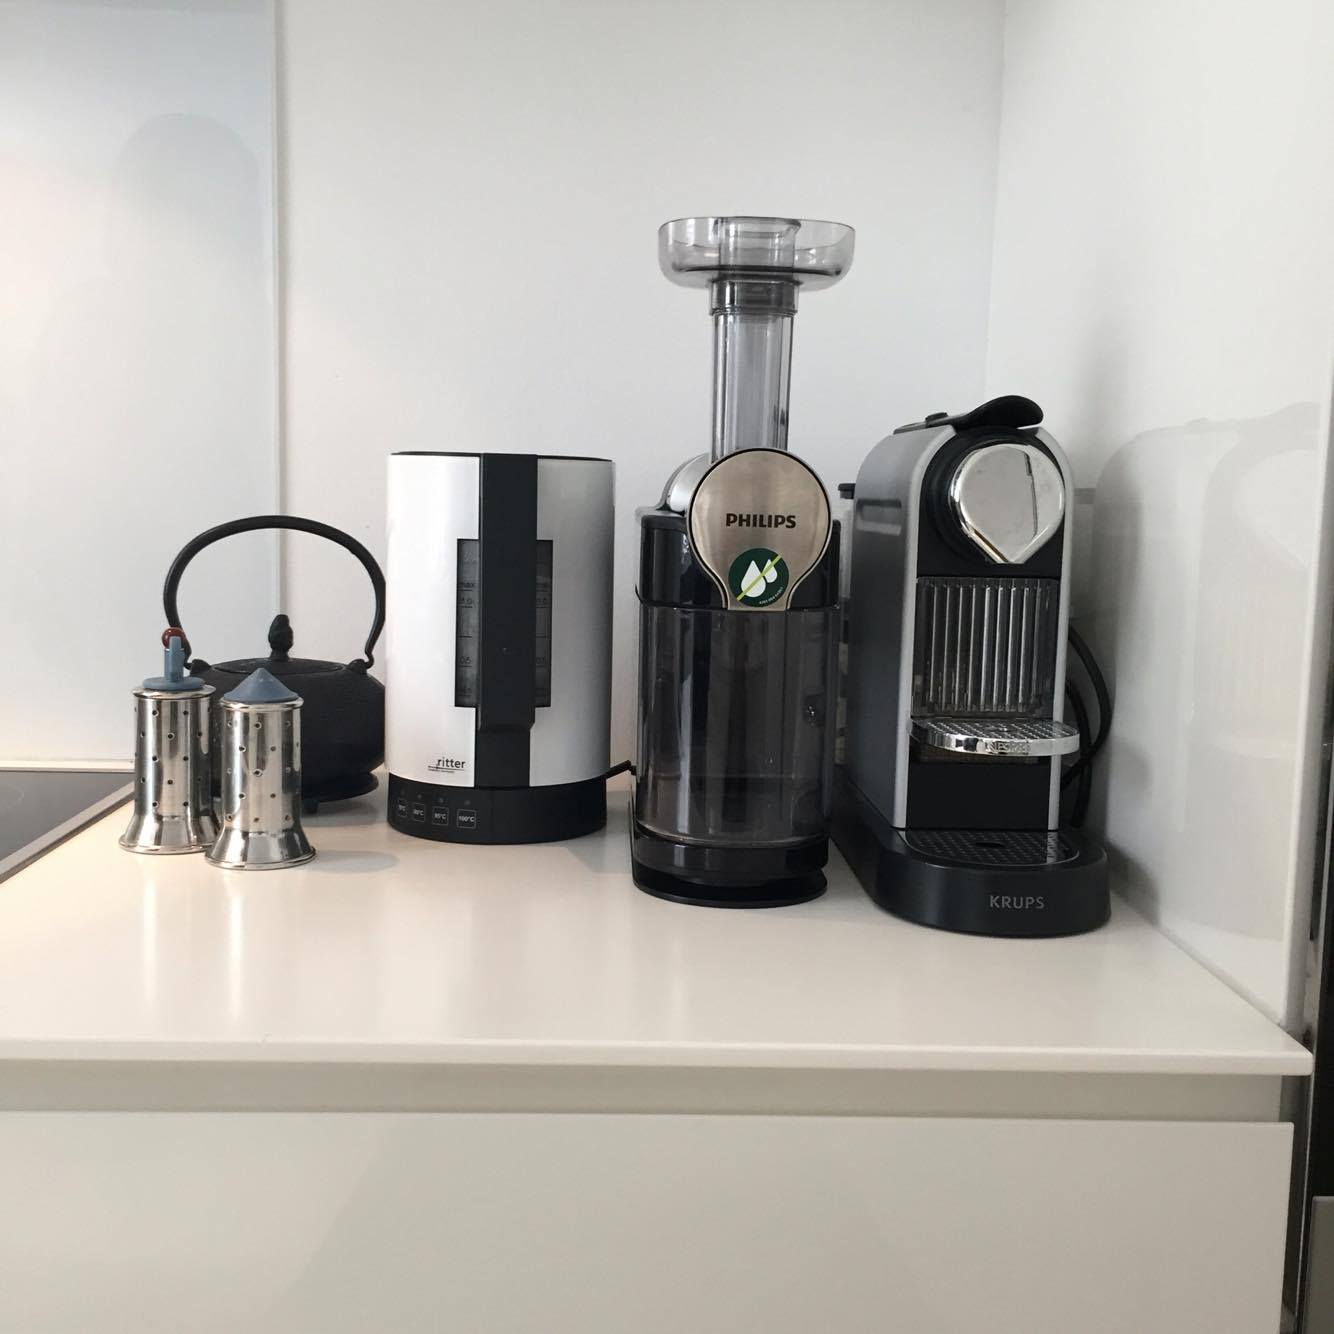 Philips Slow Juicer Demo : Philips slowjuicer